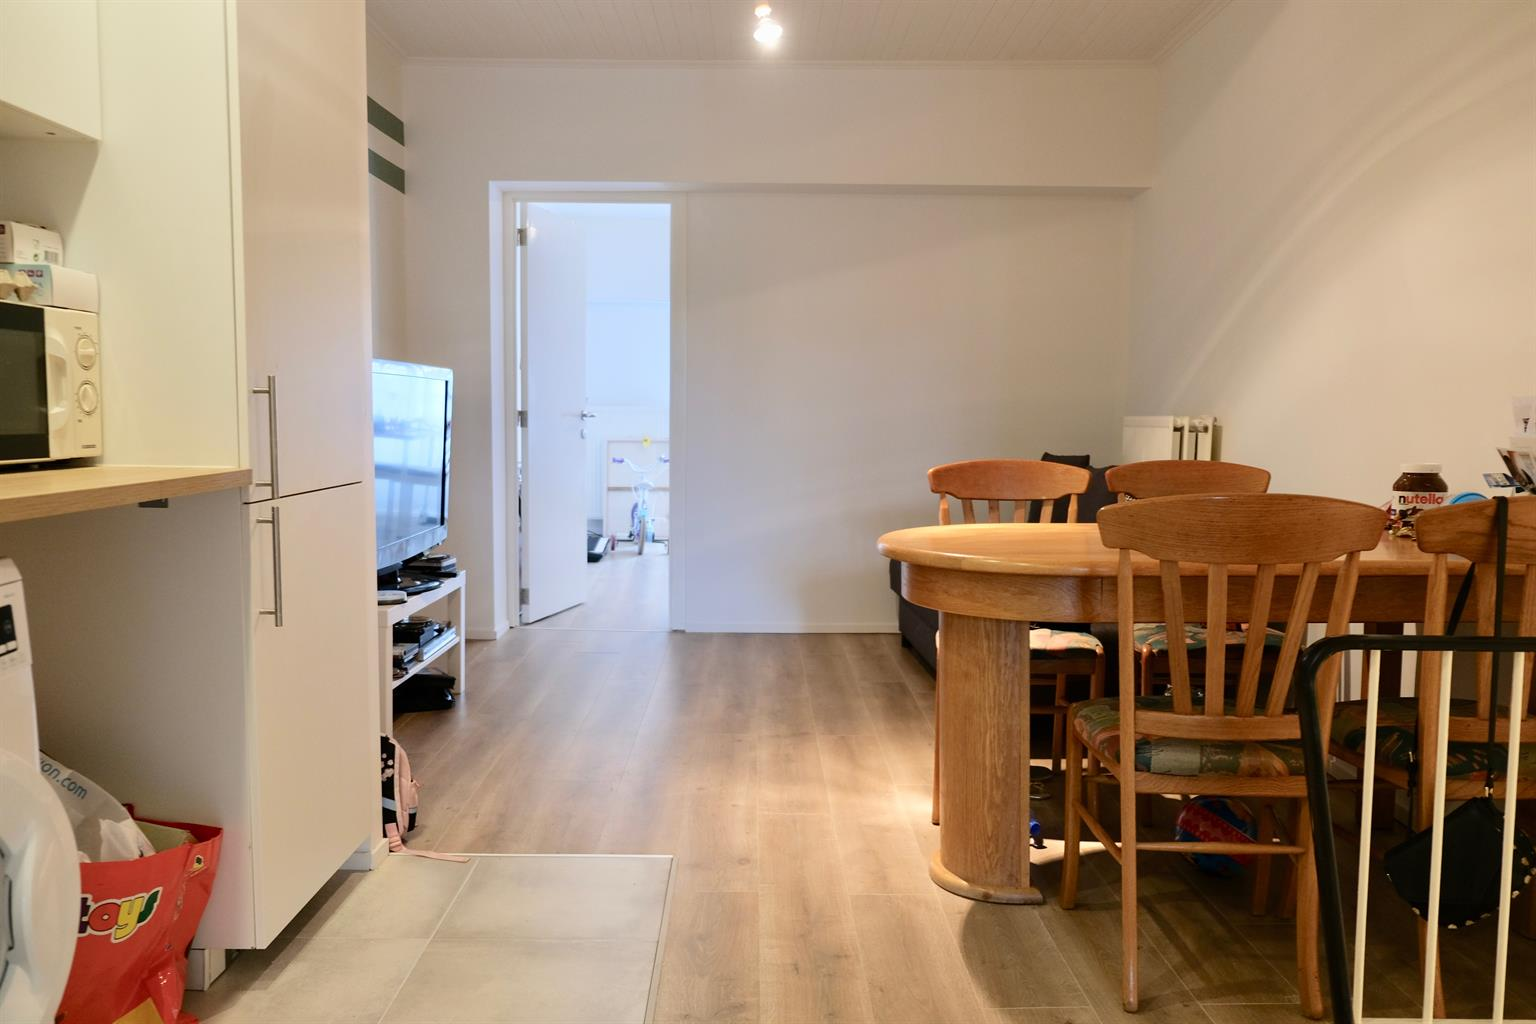 Appartement - Berchem-Sainte-Agathe - #4062915-4